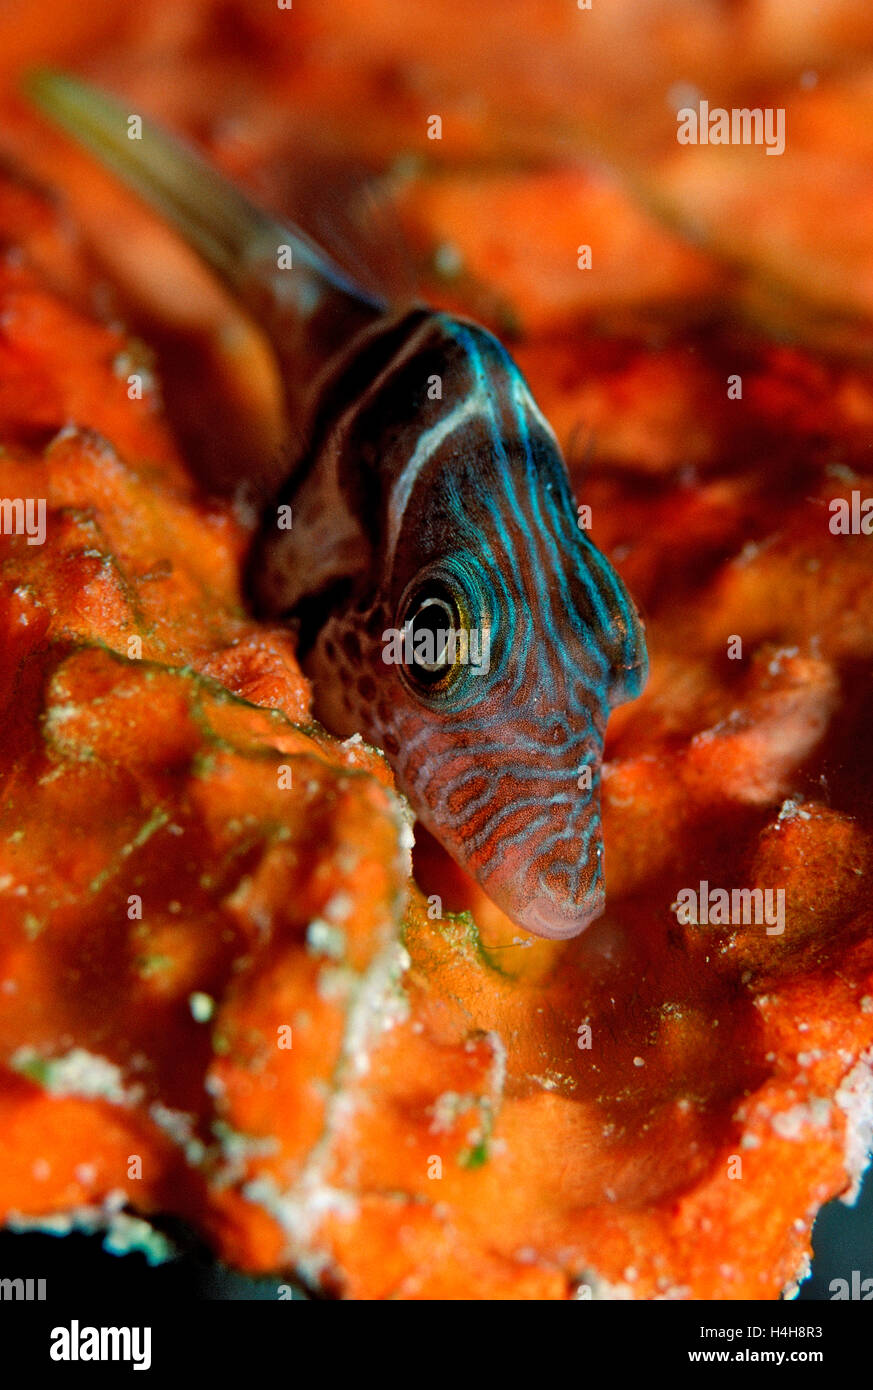 Close Up View Of Puffer Fish Stock Photos & Close Up View Of Puffer ...